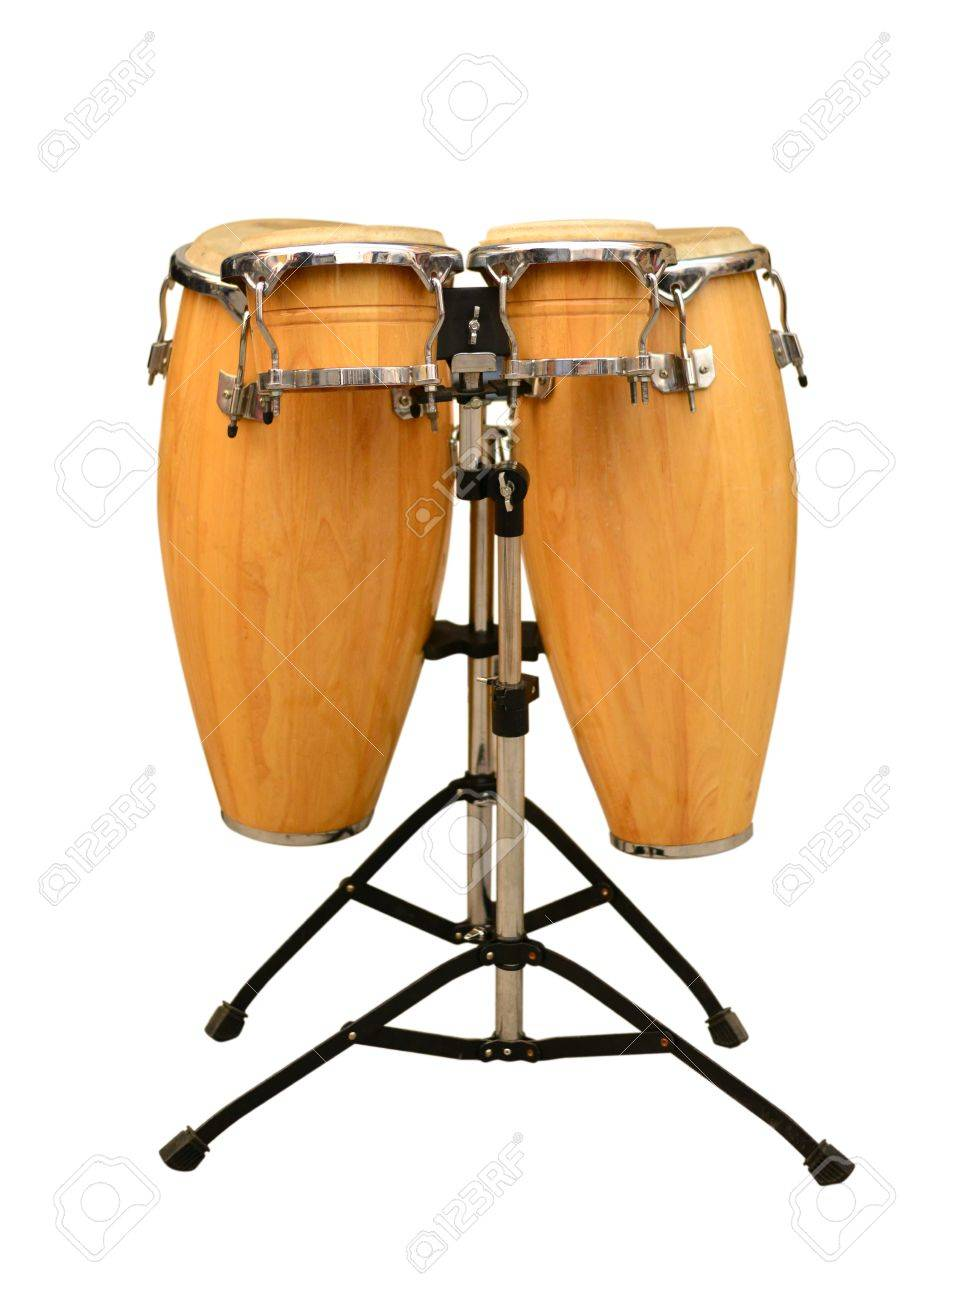 Lp Latin Percussion Caliente Series 11 And 12 Conga Drum Set With Aspire Lpa 647 Vsb On White Background Stock Photo